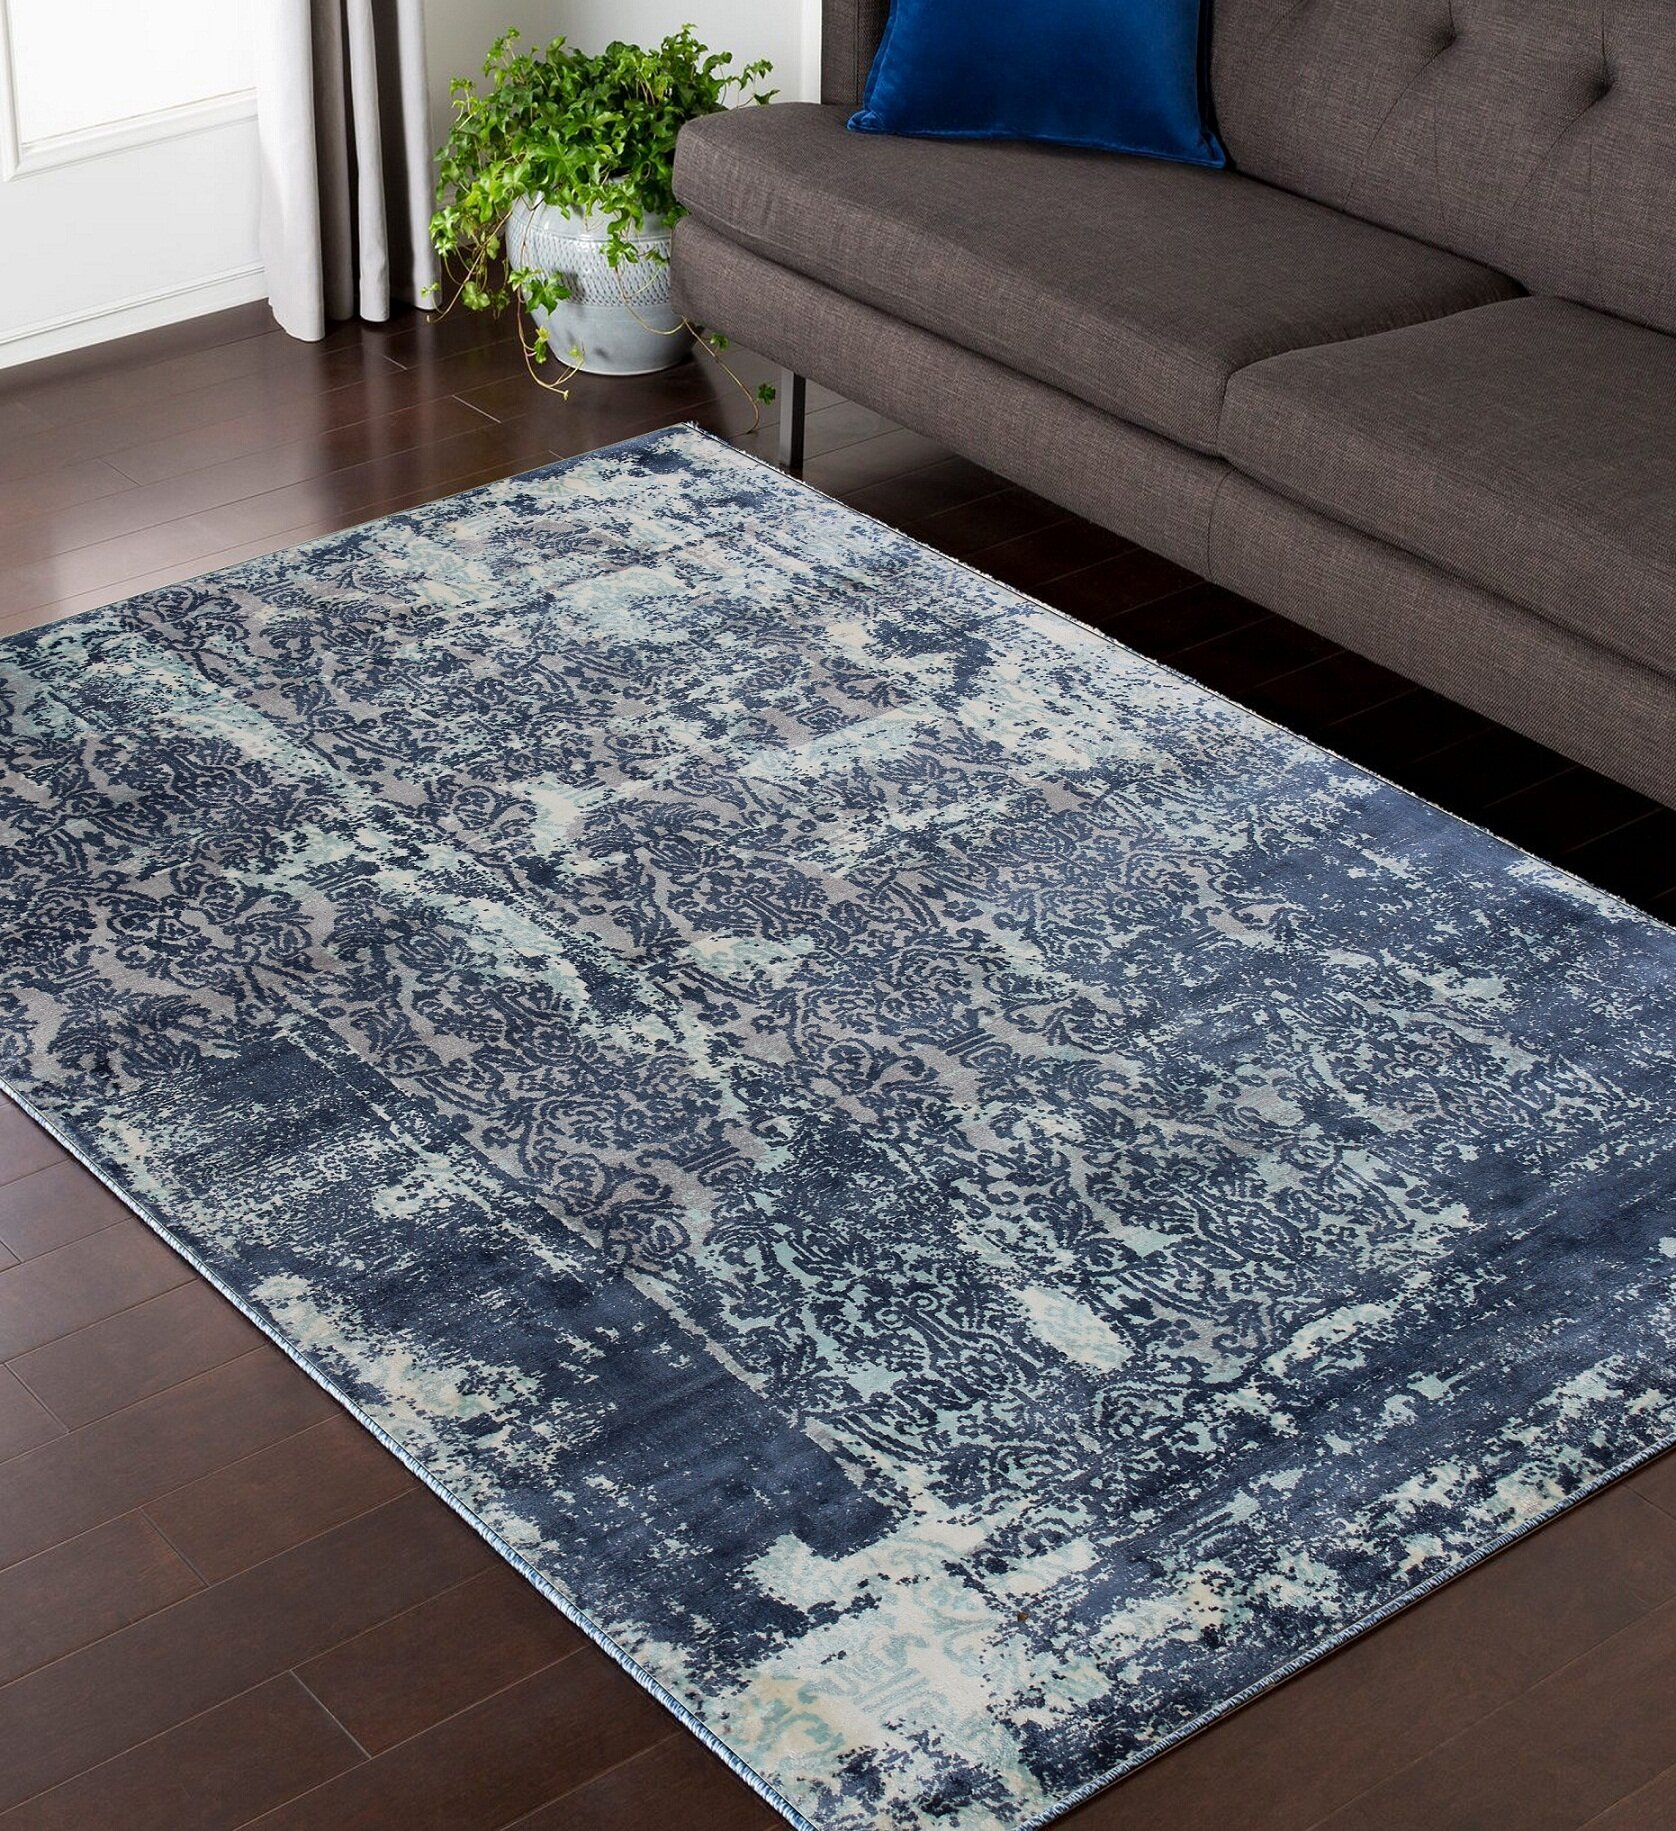 Blue Homesteadelements Area Rugs You Ll Love In 2021 Wayfair